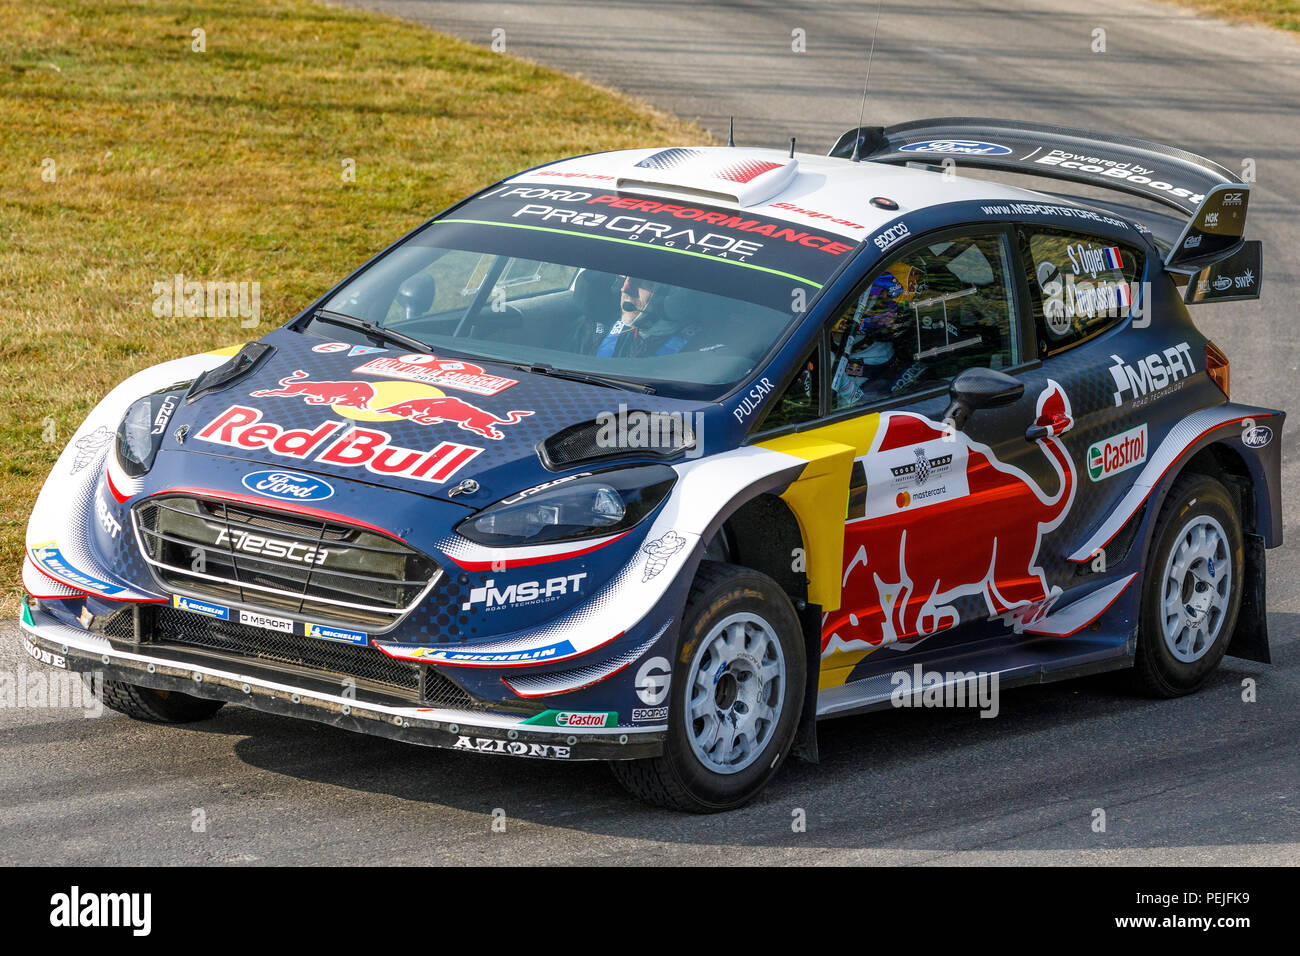 ford fiesta rally stock photos ford fiesta rally stock images alamy. Black Bedroom Furniture Sets. Home Design Ideas